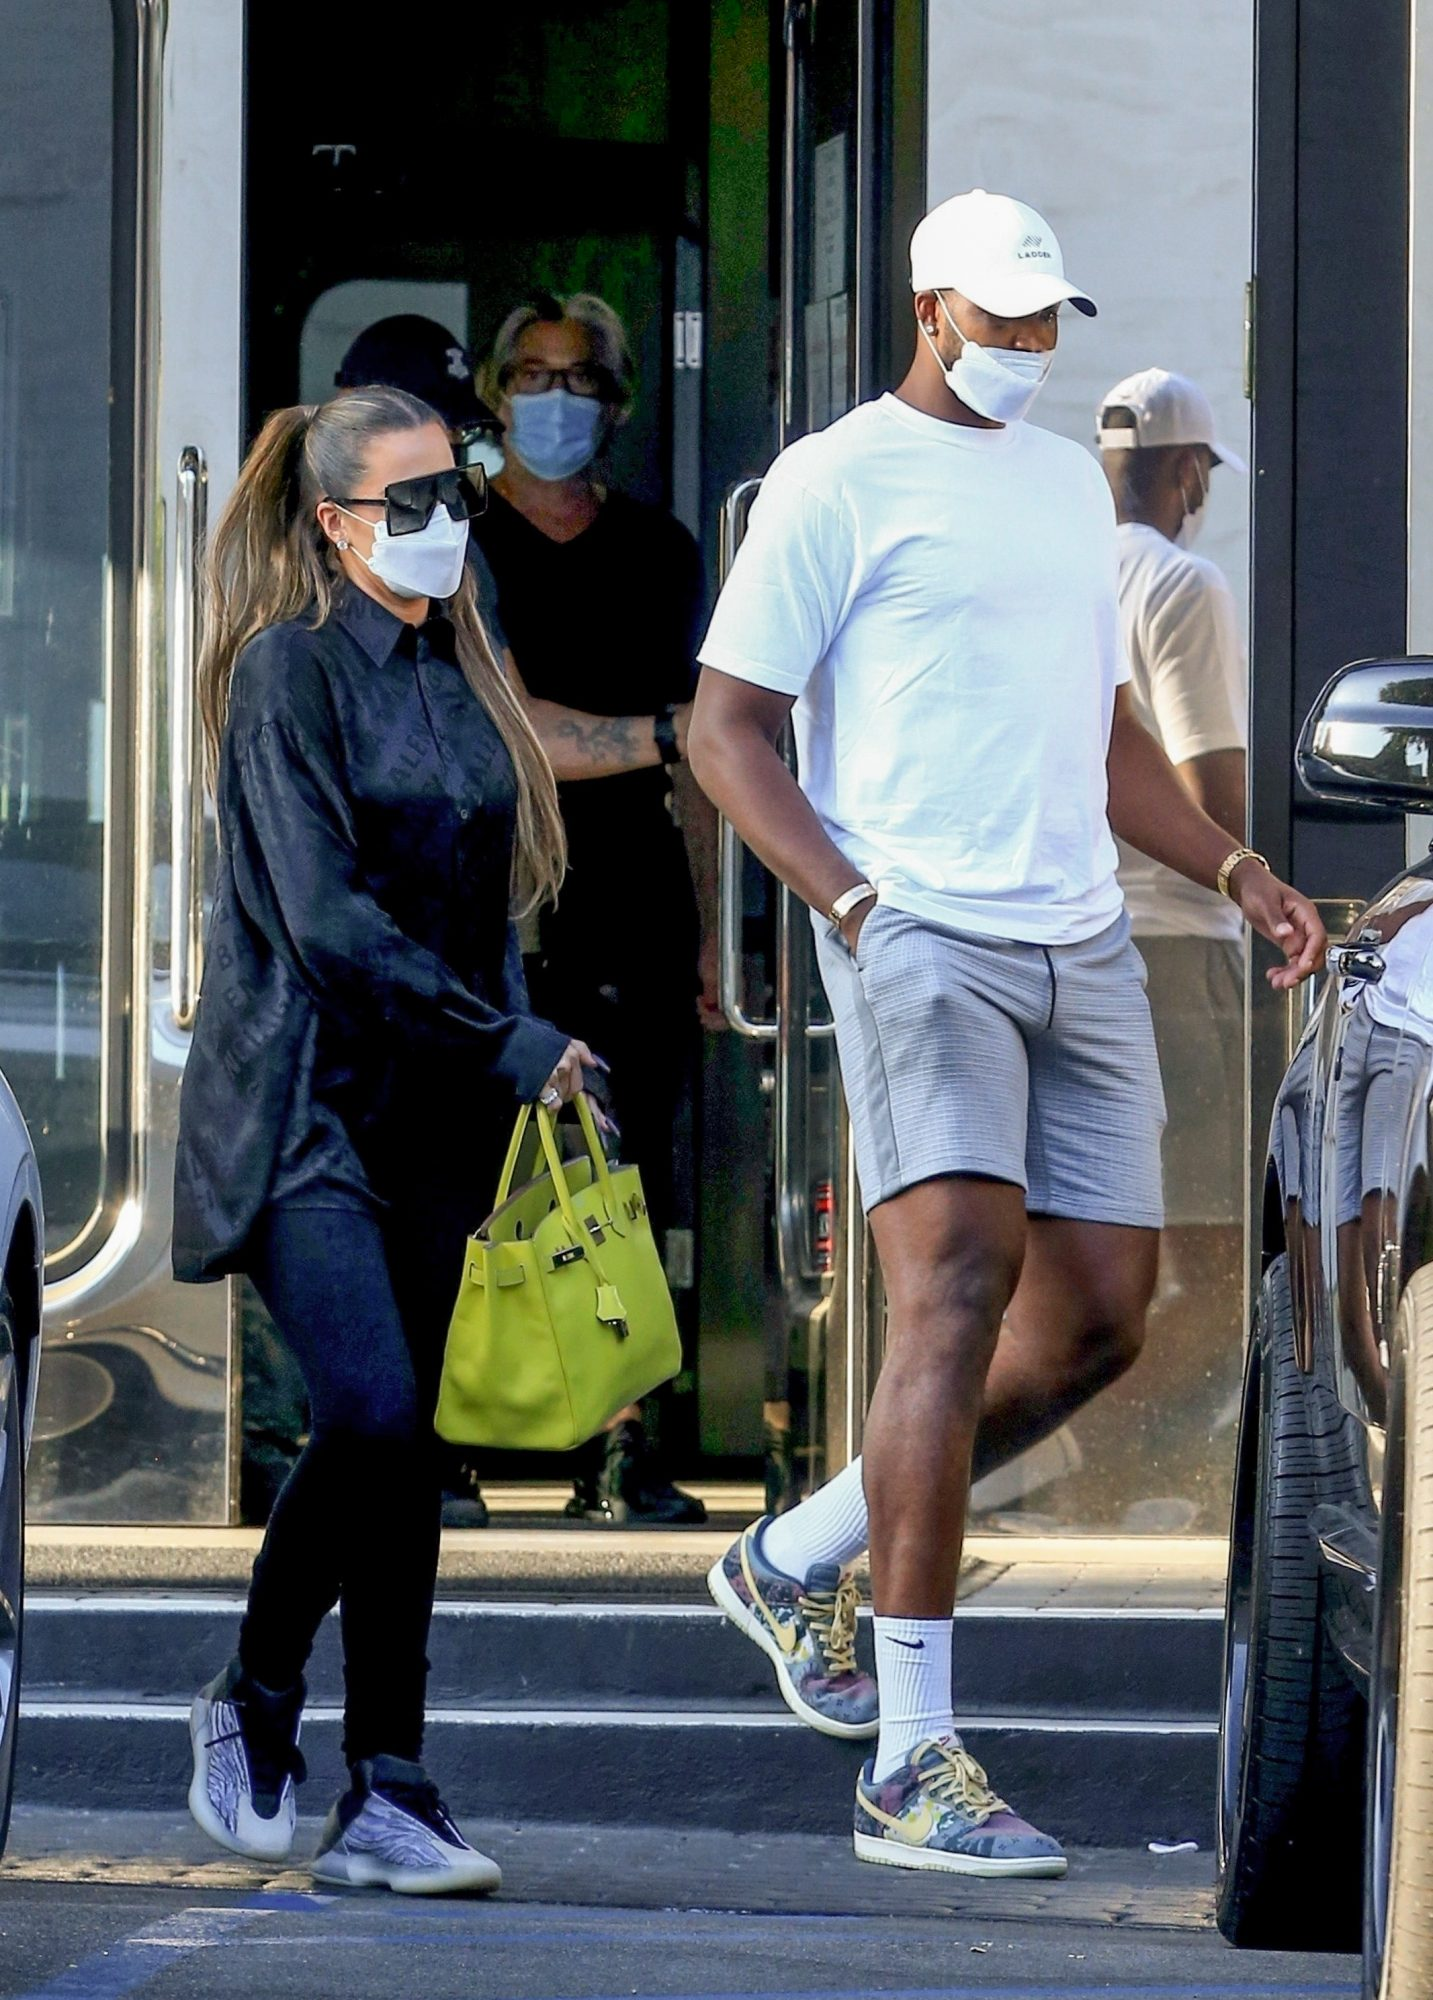 Khloe Kardashian and Tristan Thompson return to their Rolls Royce after some shopping at XIV Karats Ltd in Beverly Hills